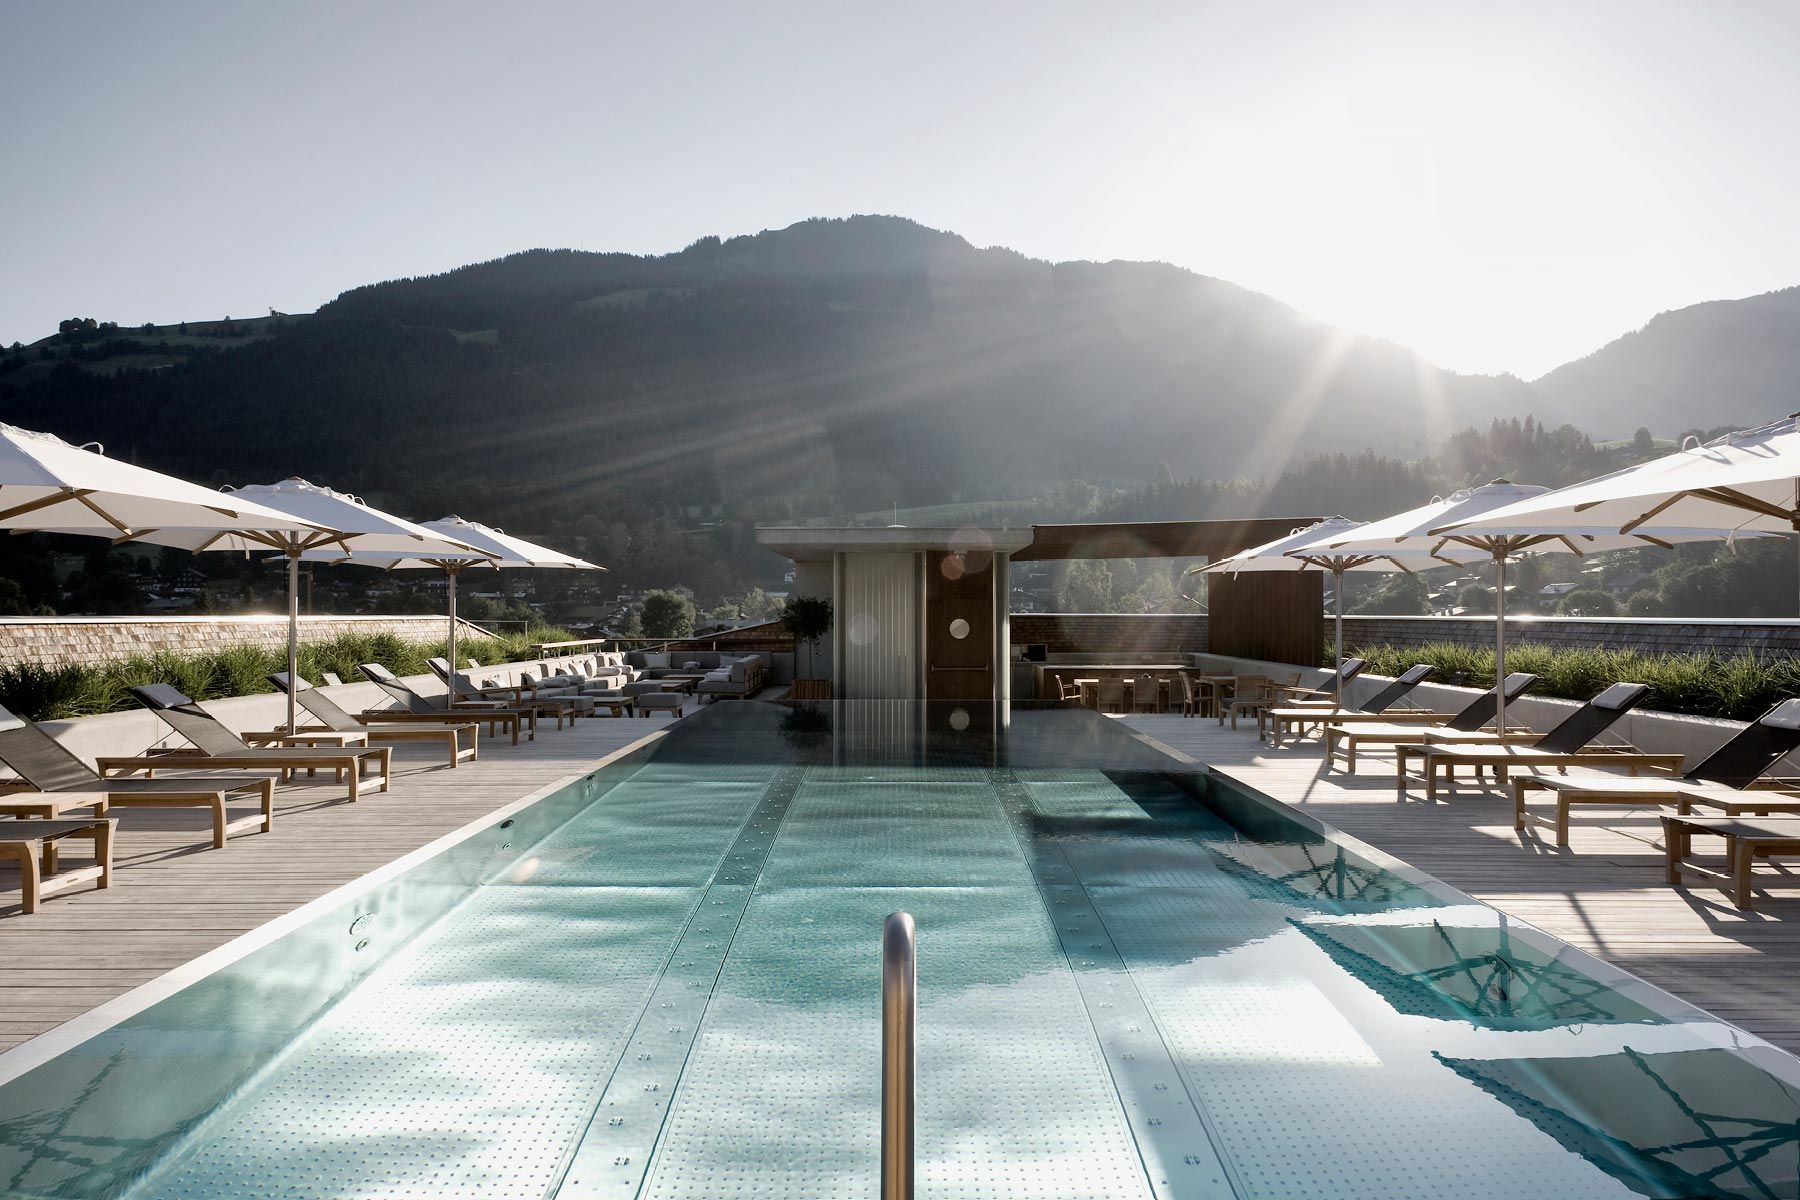 Hotel Schwarzer Adler Pool At The Hotel Schwarzer Adler In Kitzba 1 4 Hel Austria Designed